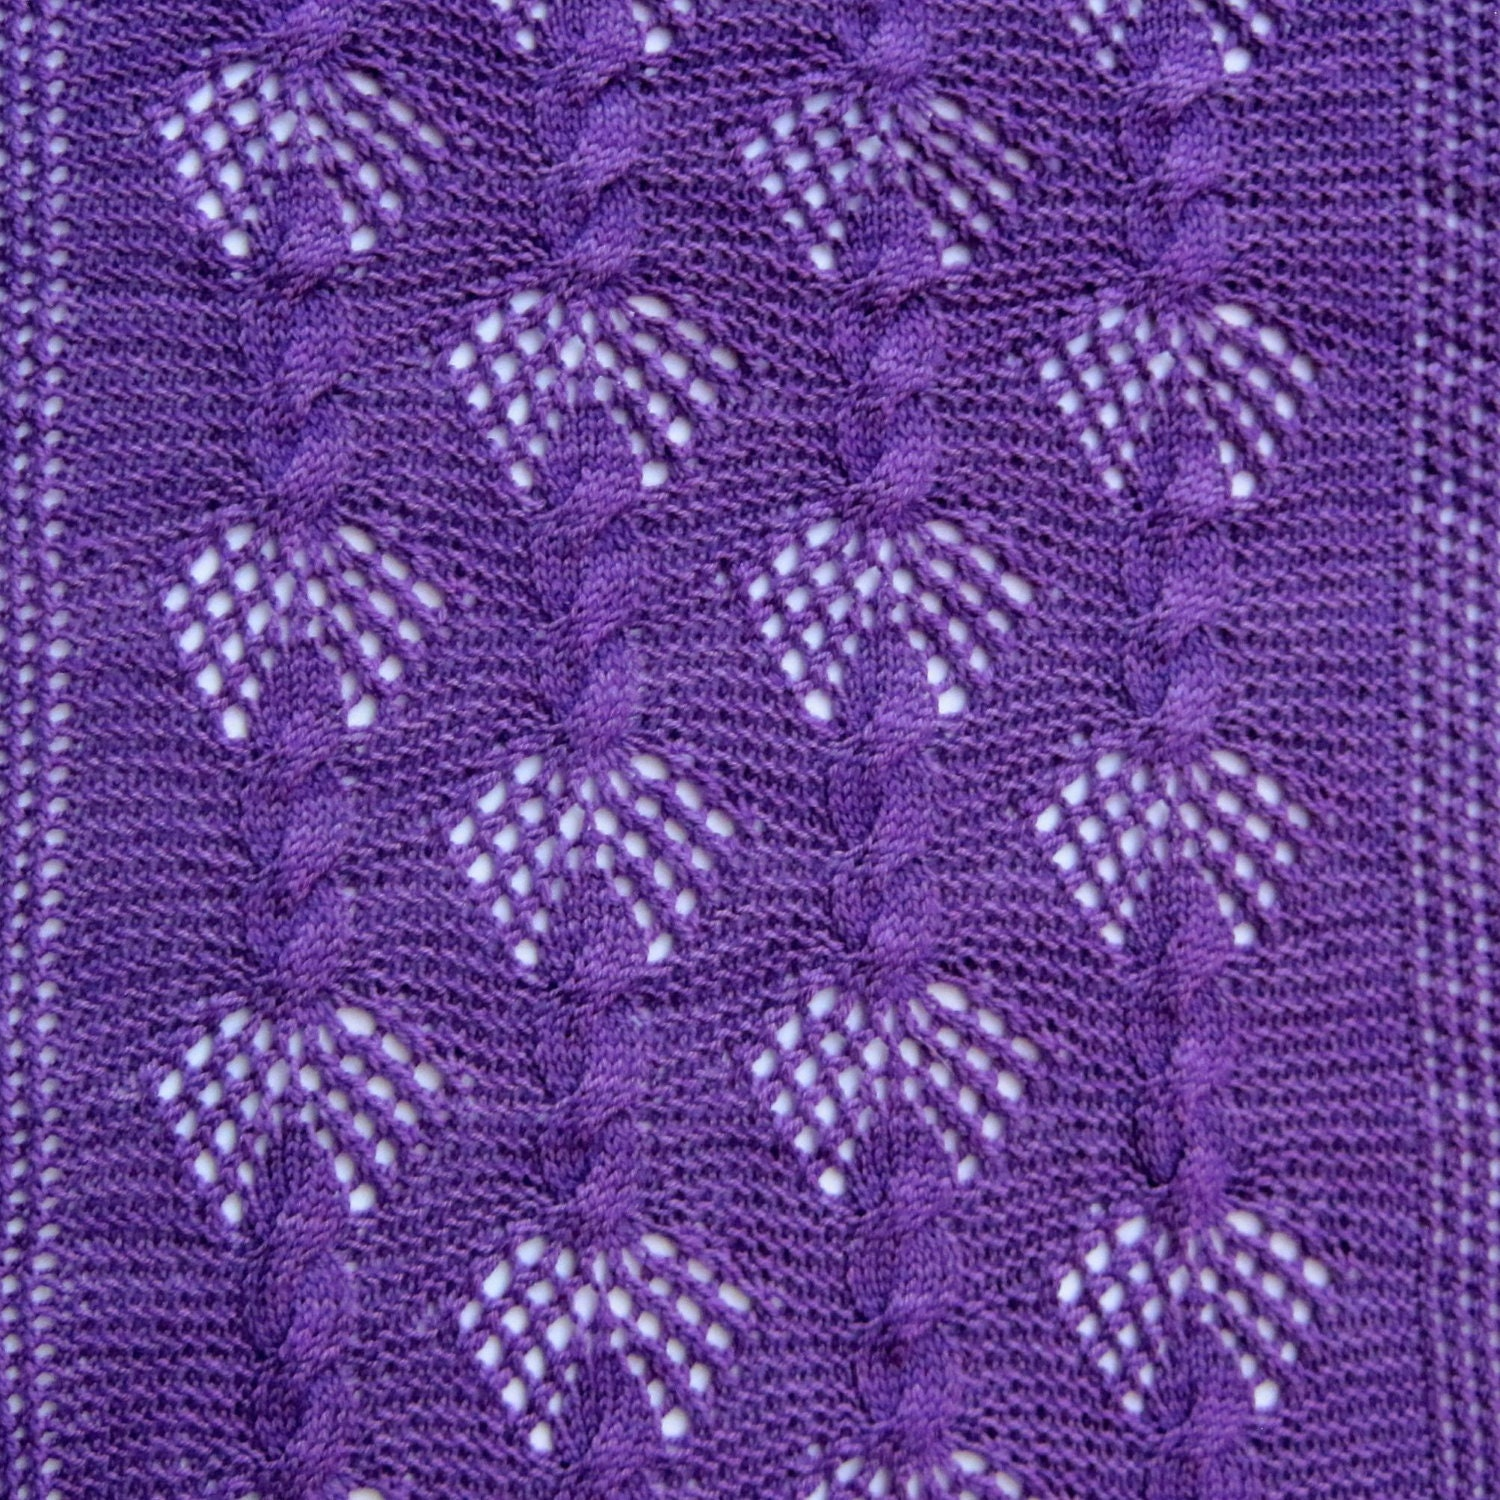 Knit Wrap Pattern: Mesh and Fan Cable Lace Wrap Knitting